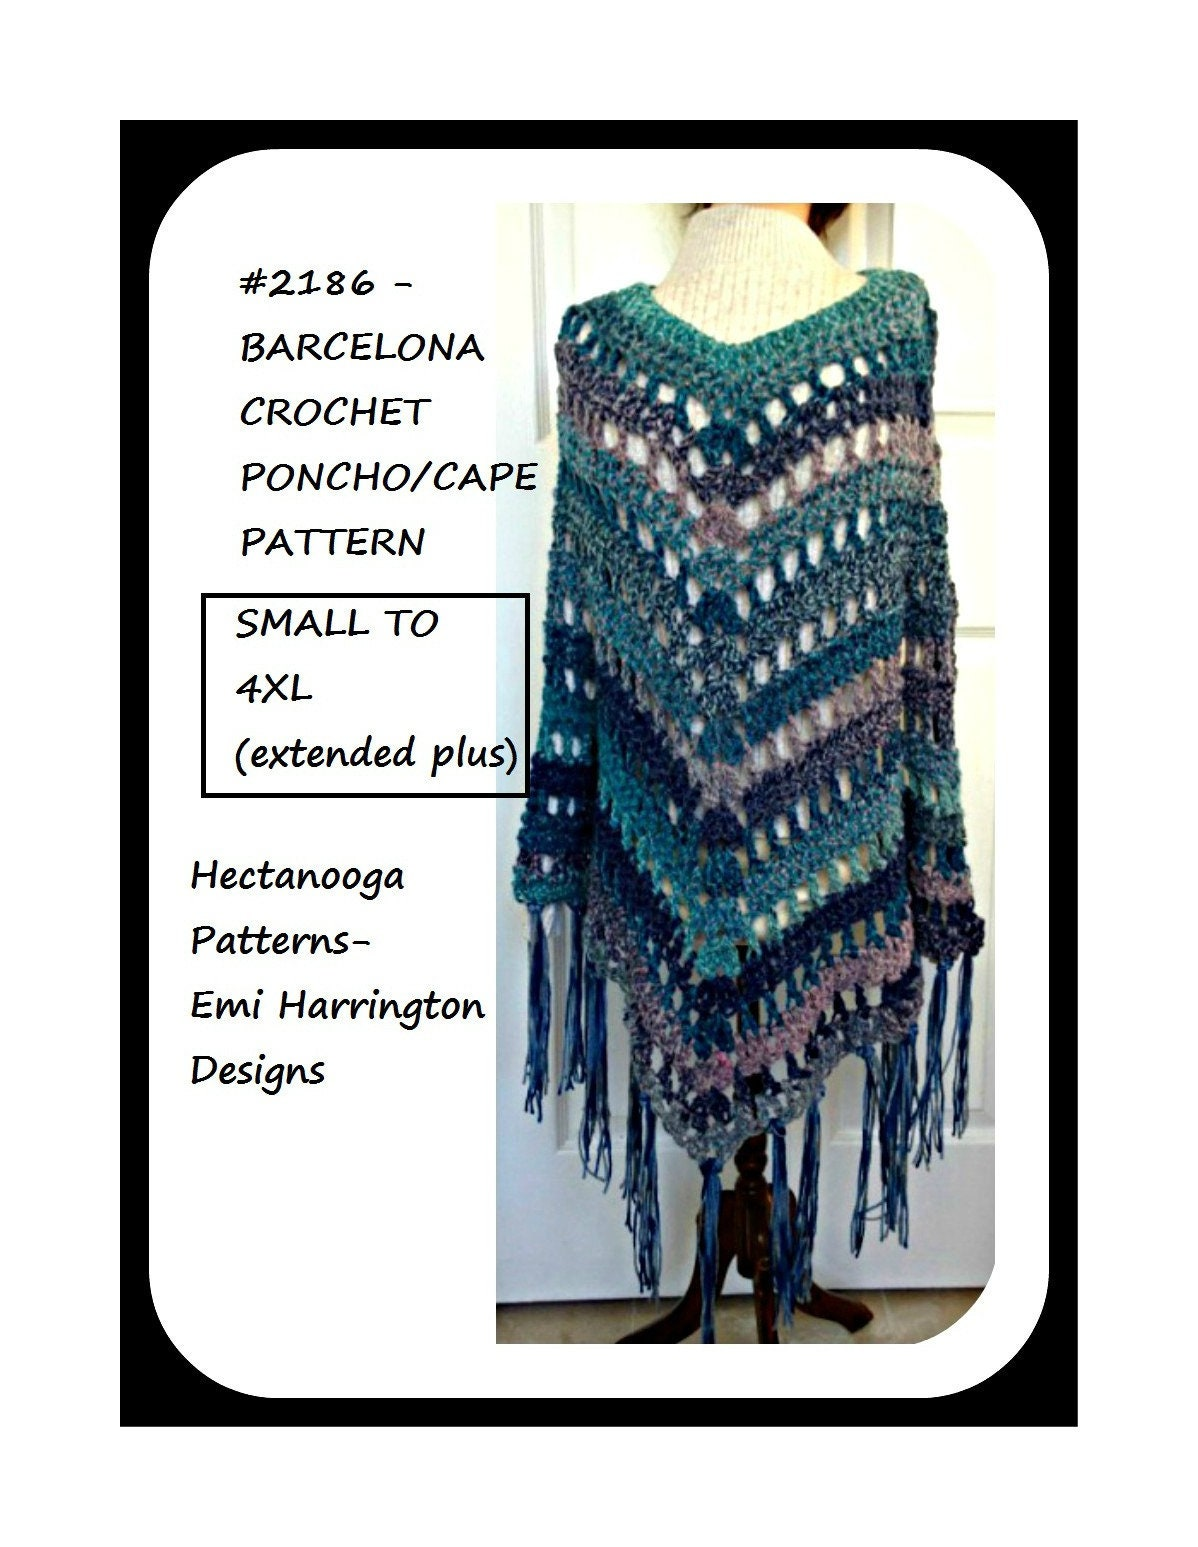 CROCHET PONCHO CAPE Pattern All sizes from small to 4XL